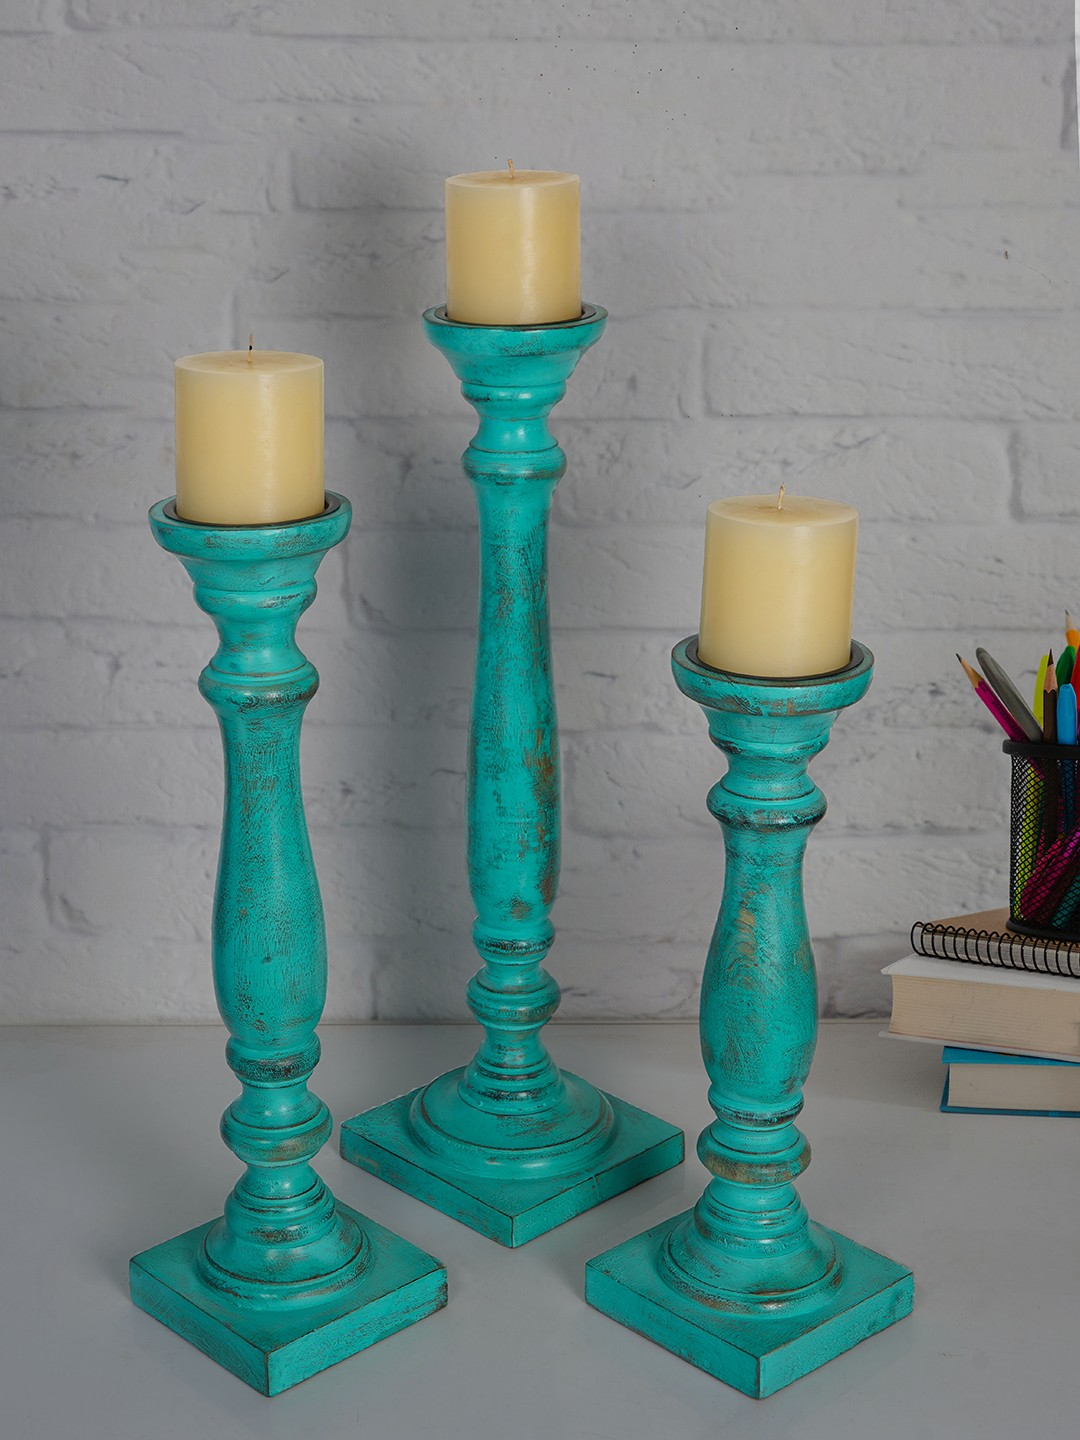 Rustic Green Set of 3 Wooden Pillar Candle Stands (without candles)